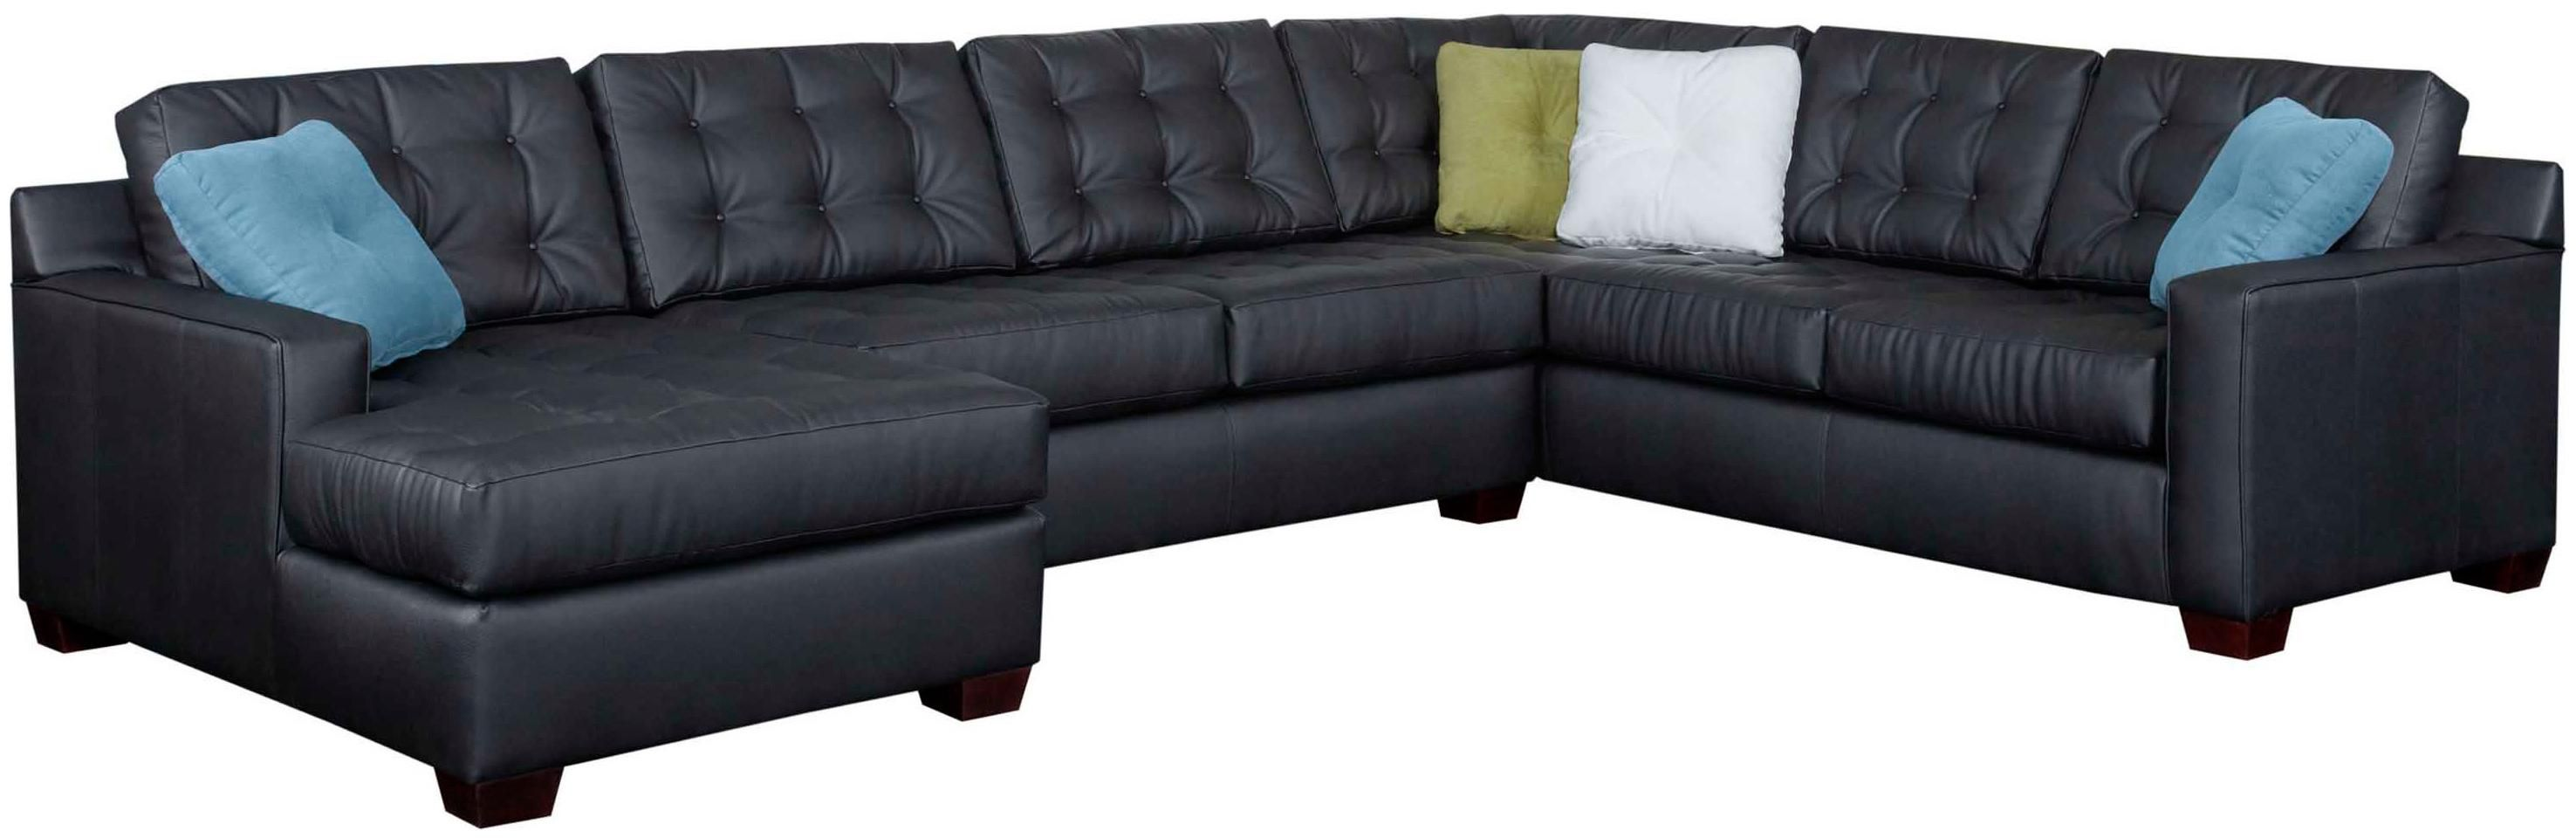 Soho Contemporary Sectional Sofa With Left Chaise By Broyhill